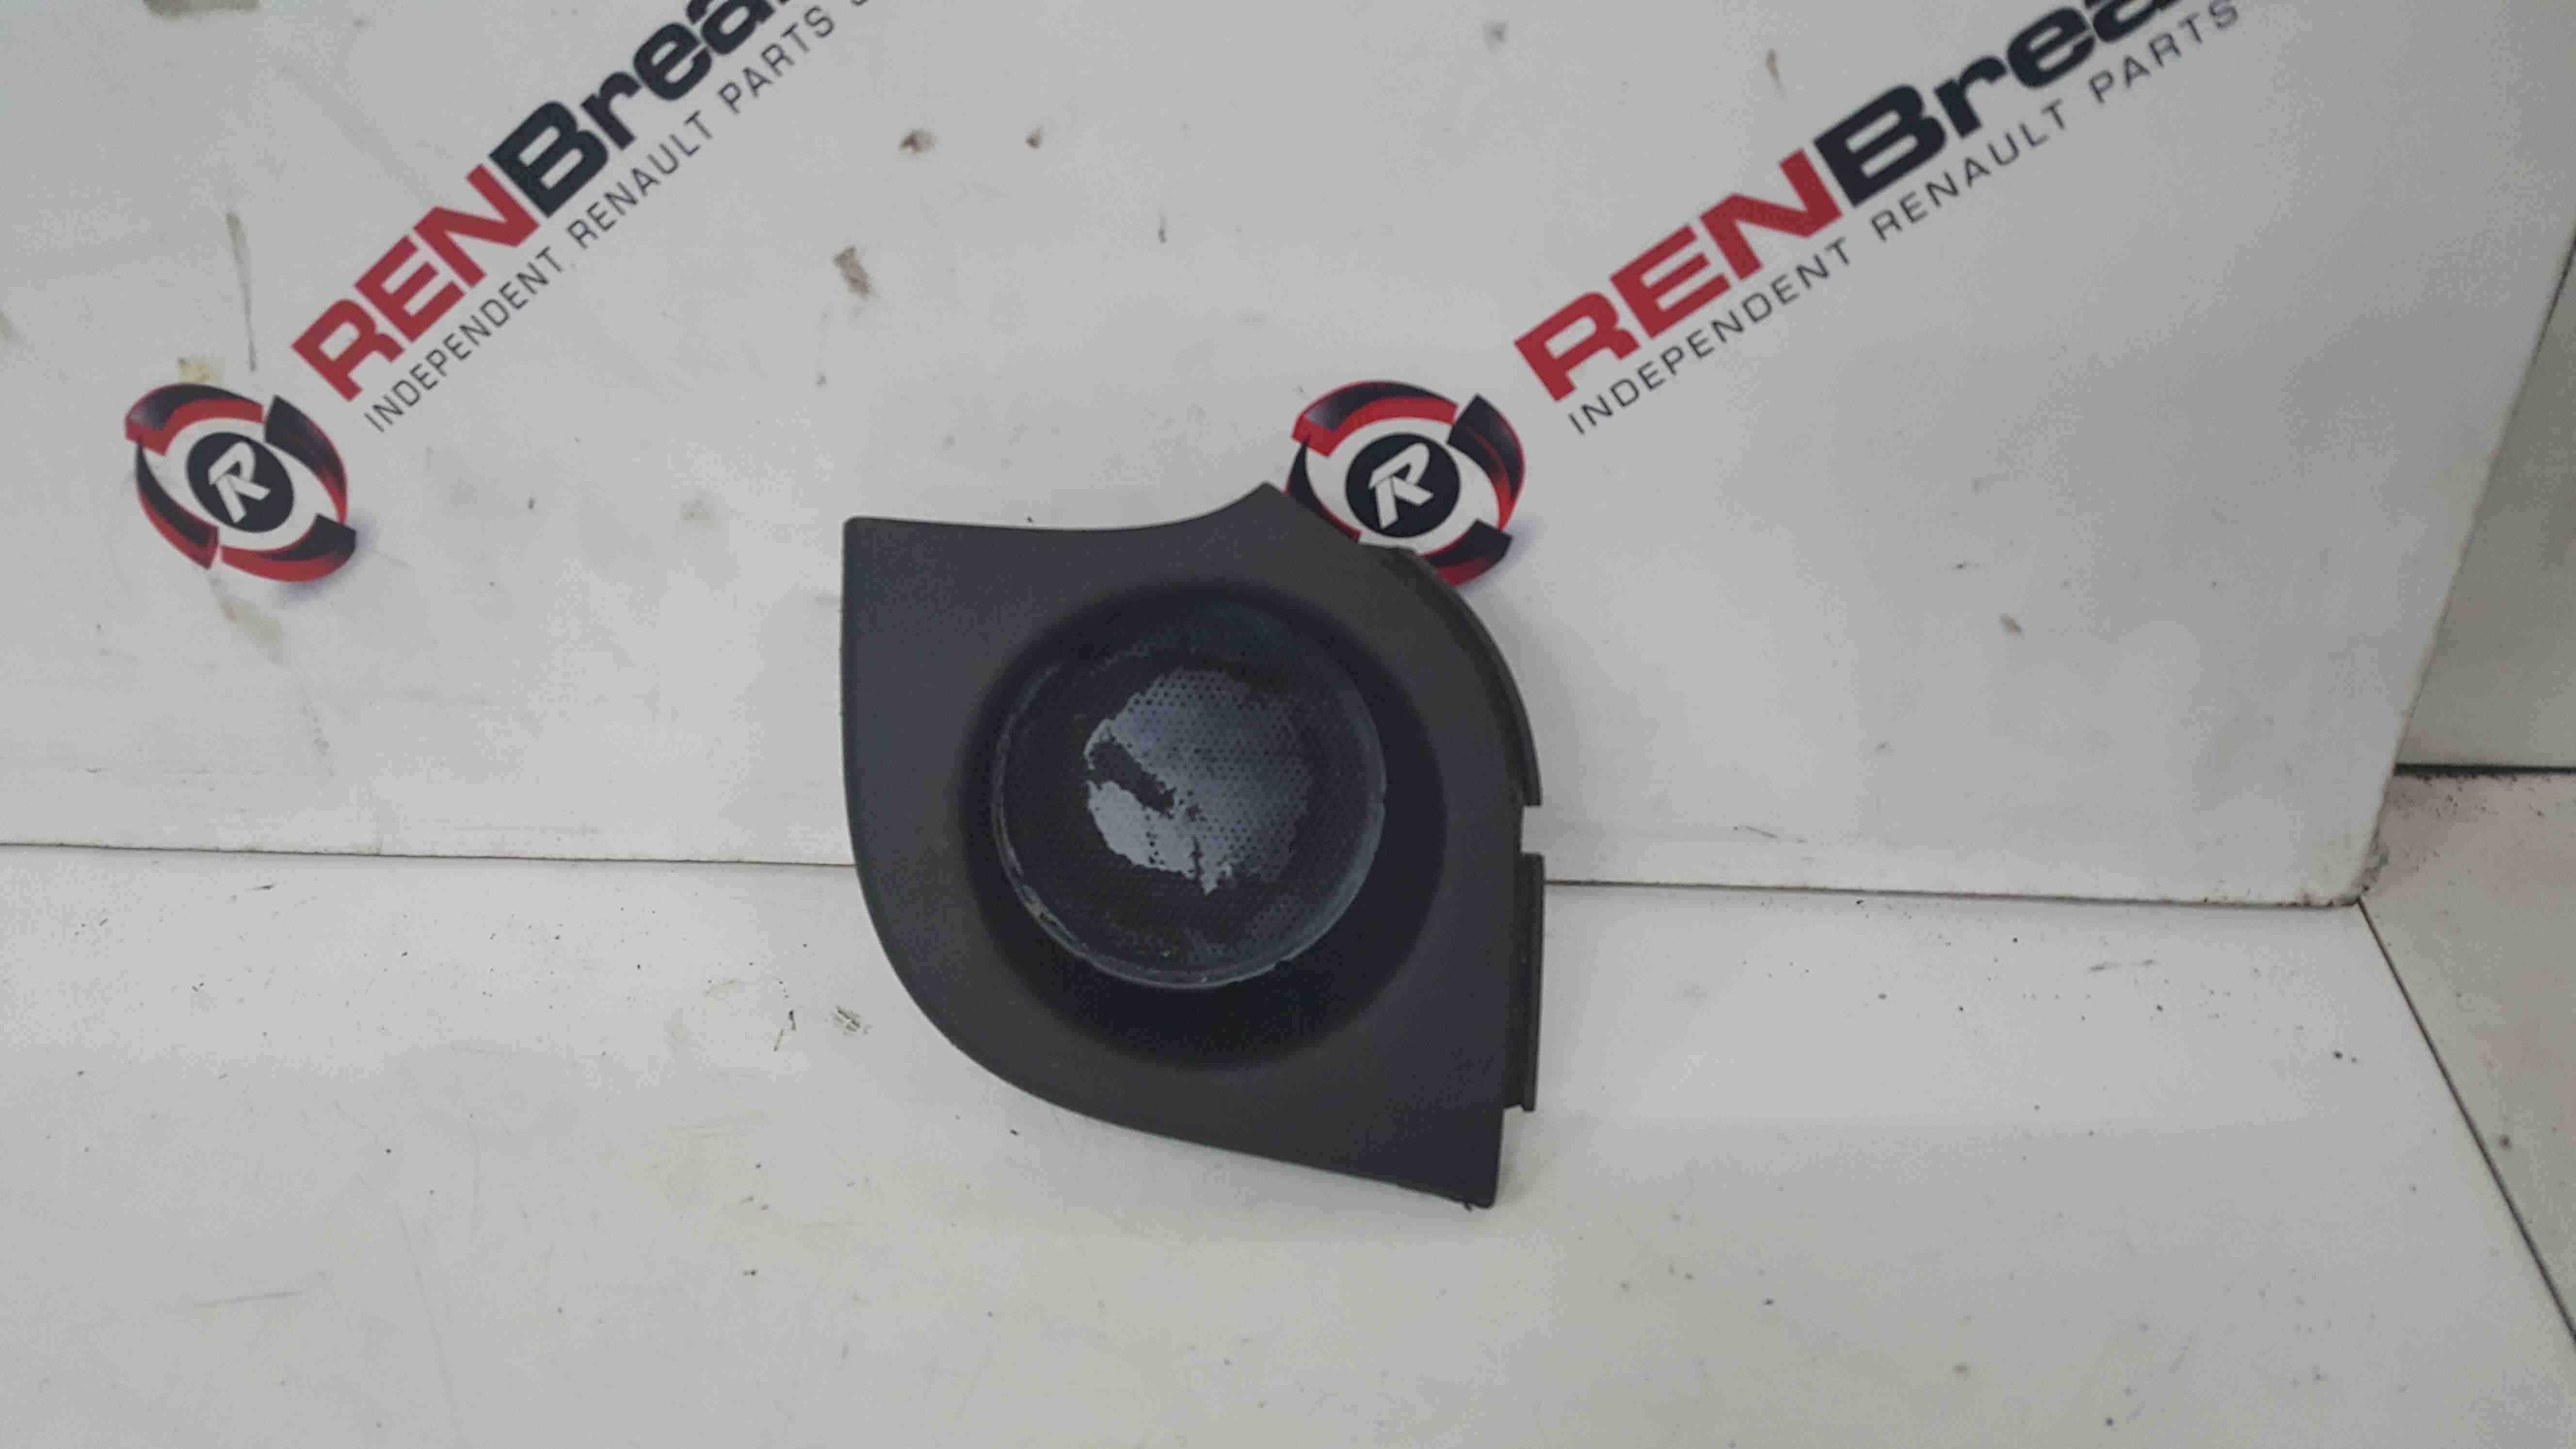 Renault Master 2010-2018 Drivers OSF Front Ash Tray Cup Holder 6321s0155